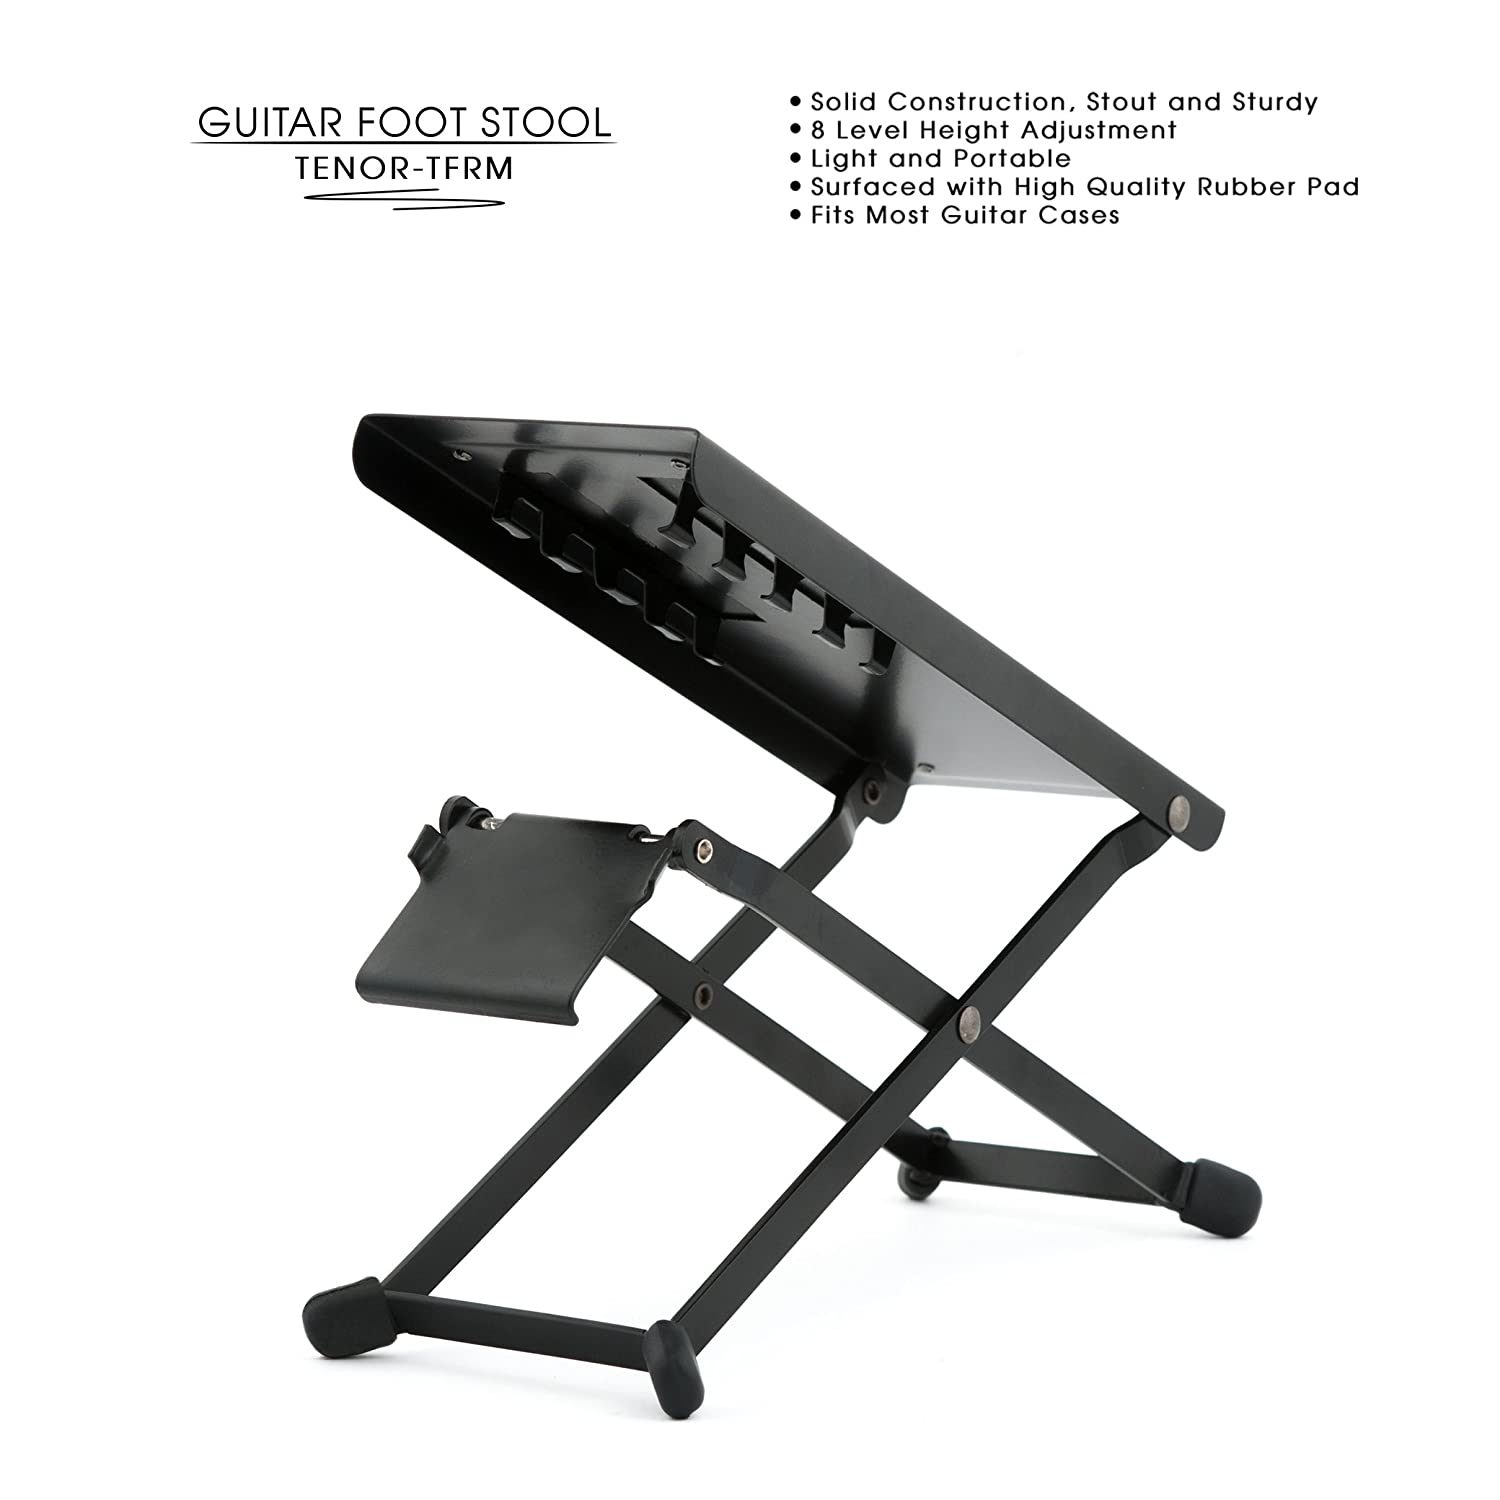 Limited Promo Tenor Professional Metal Guitar Foot Rest